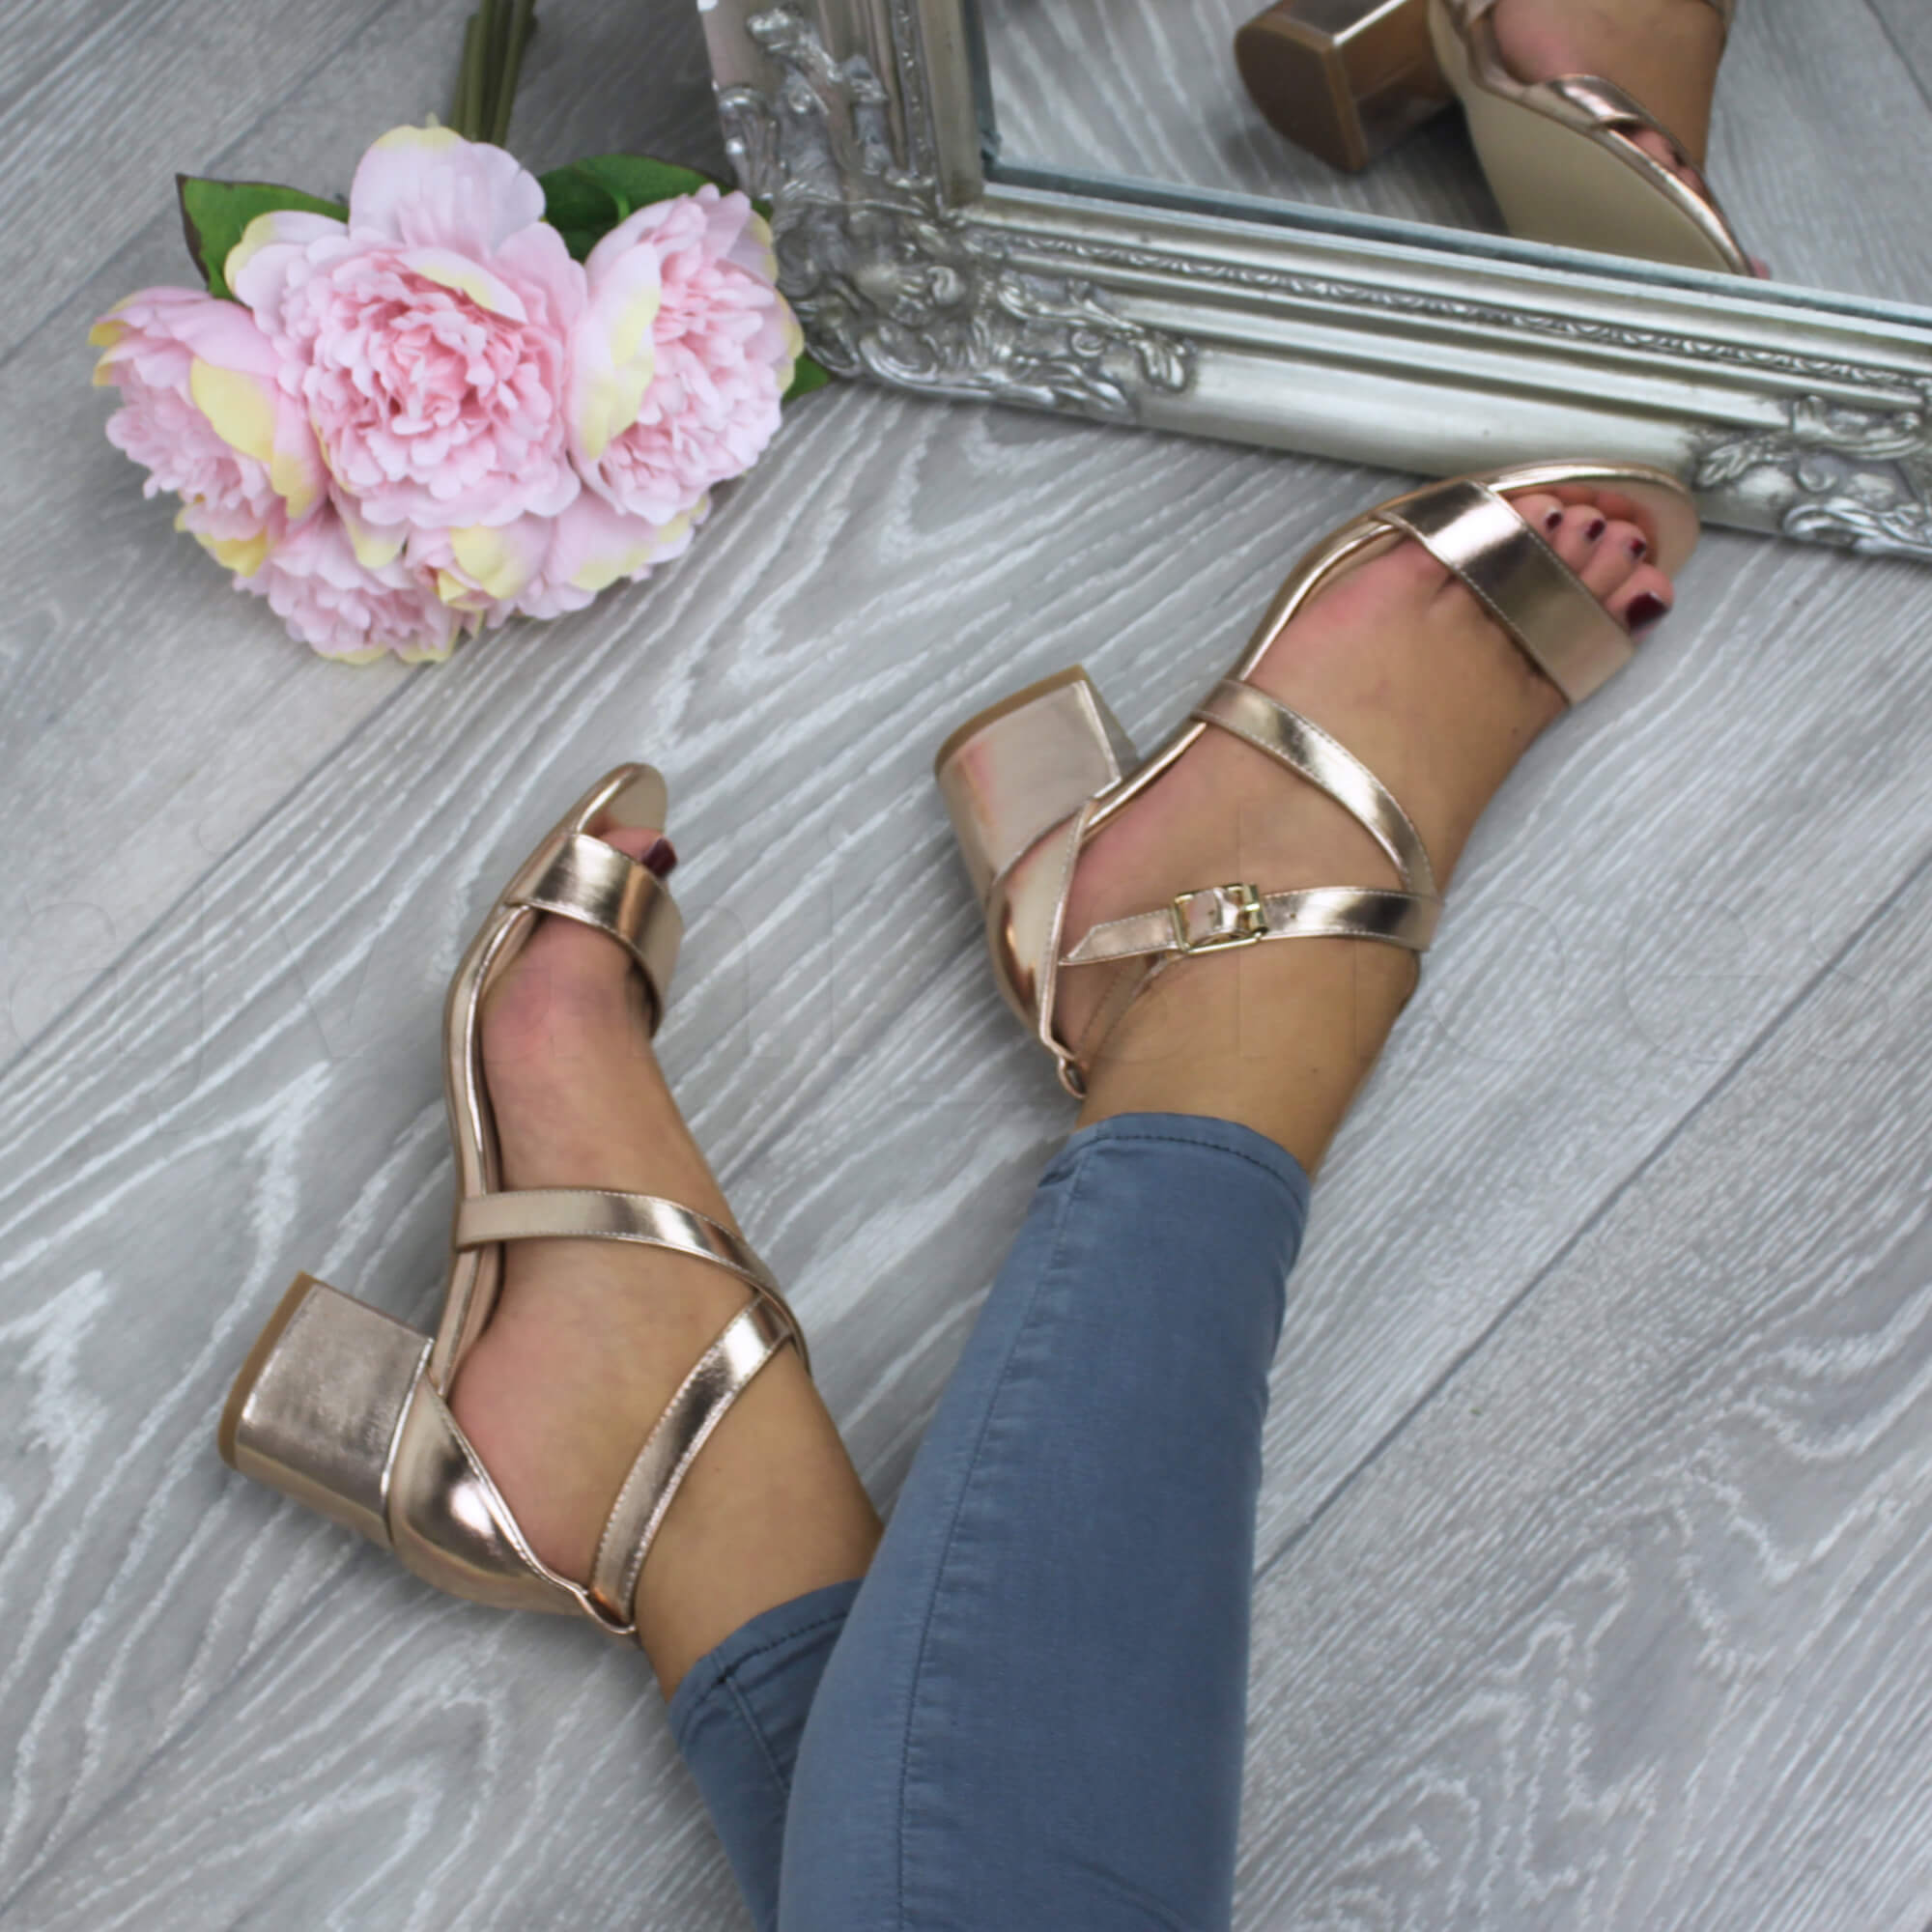 WOMENS-LADIES-MID-LOW-BLOCK-HEEL-CROSS-STRAPS-PARTY-STRAPPY-SANDALS-SHOES-SIZE thumbnail 73